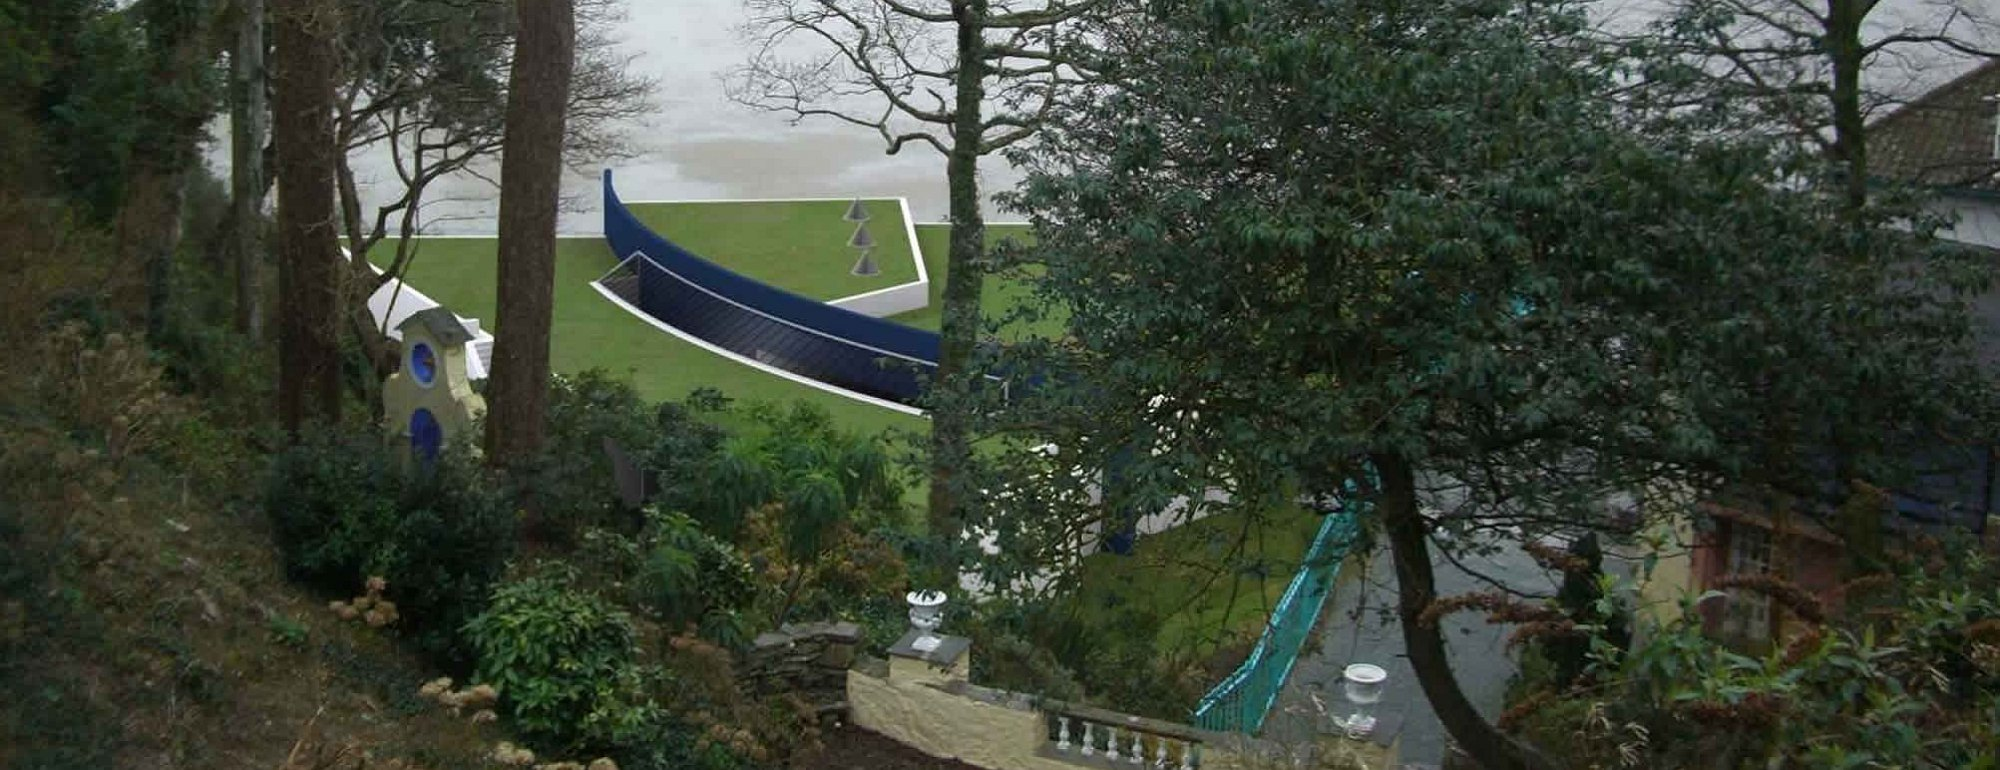 Spa Development, Portmeirion